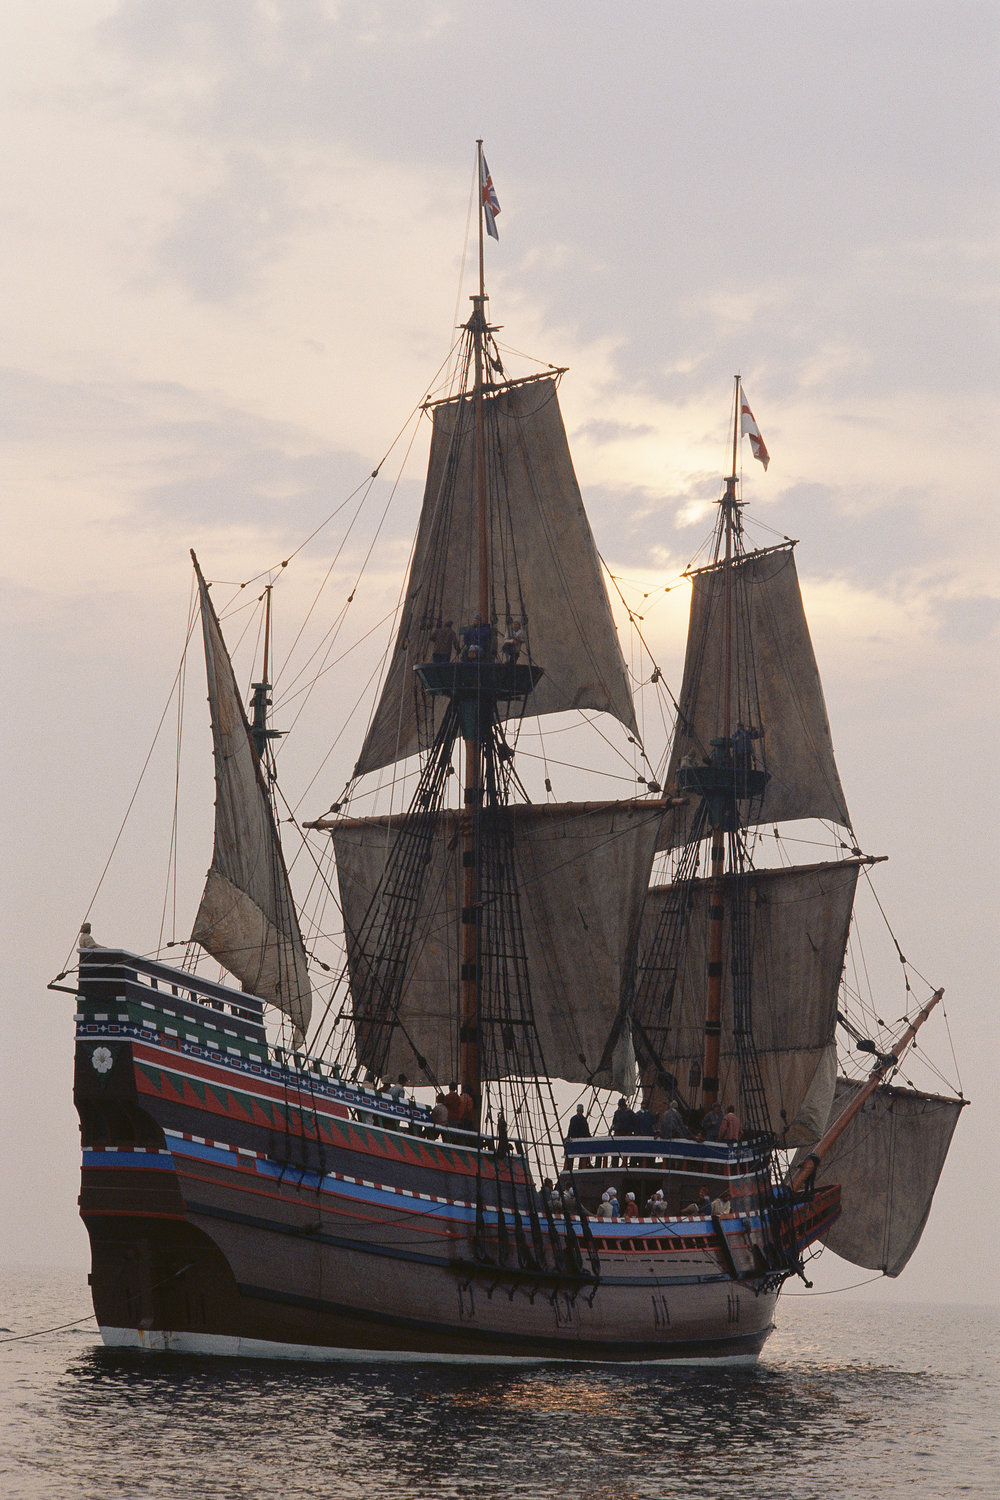 The Mayflower II is a replica of the original ship.